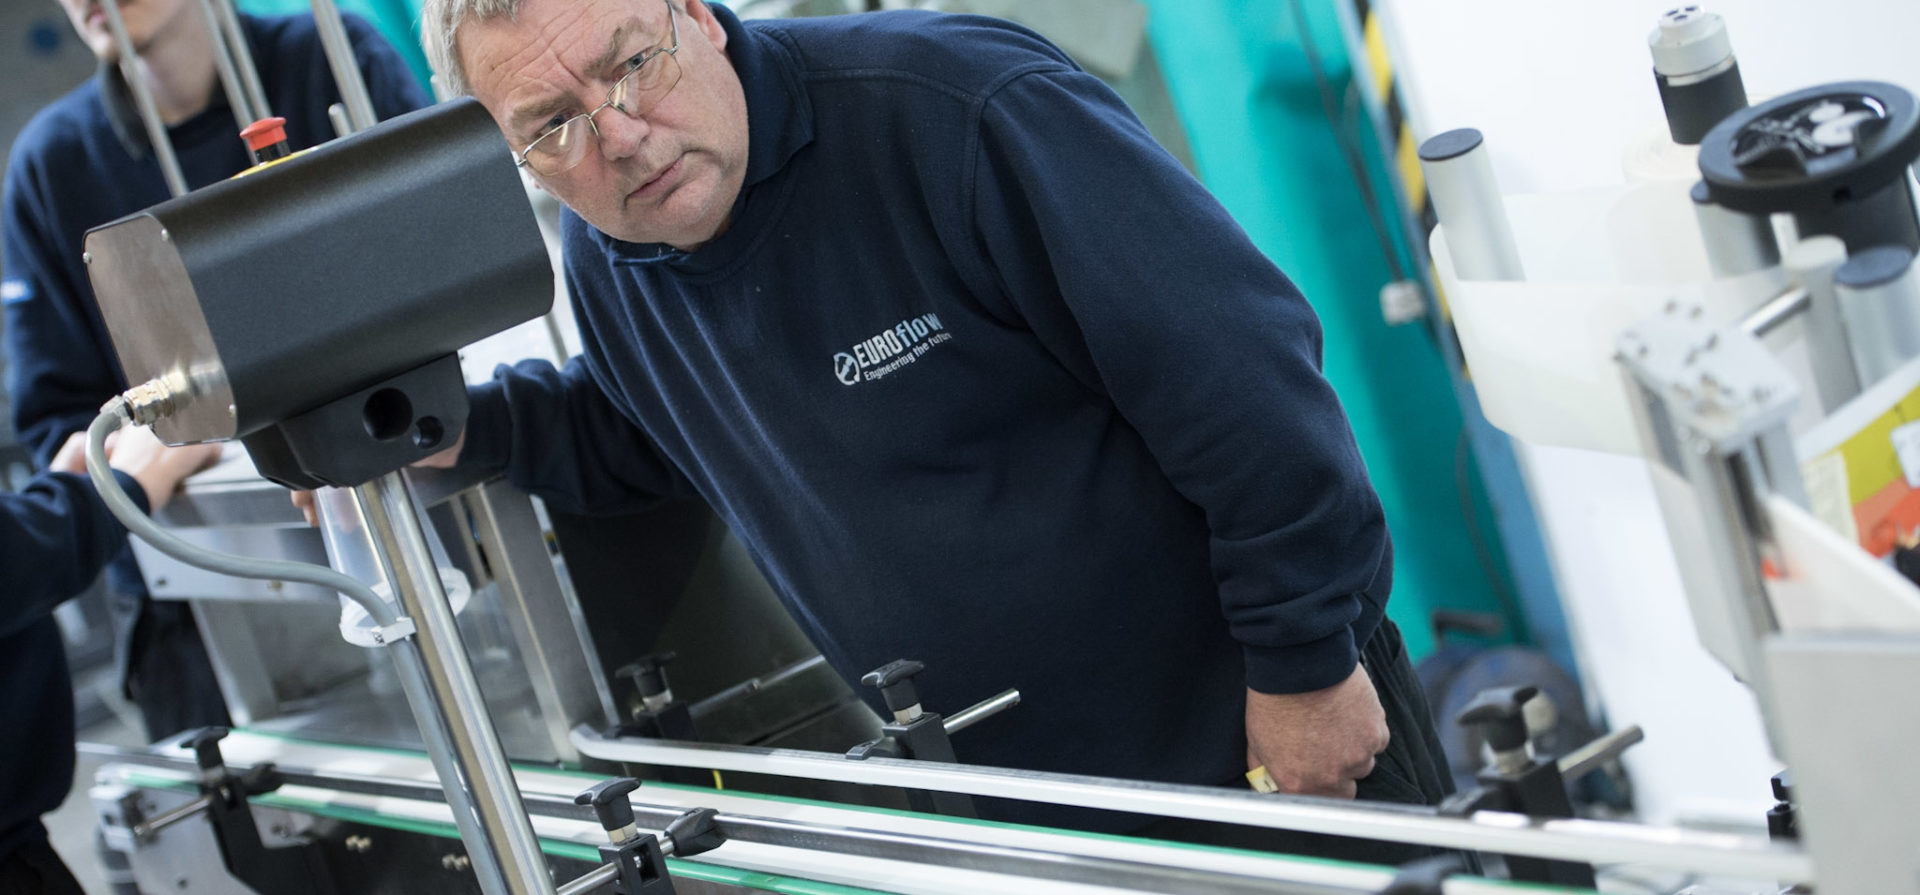 Bespoke Solutions - Experienced Engineers | Euroflow Automation Ltd